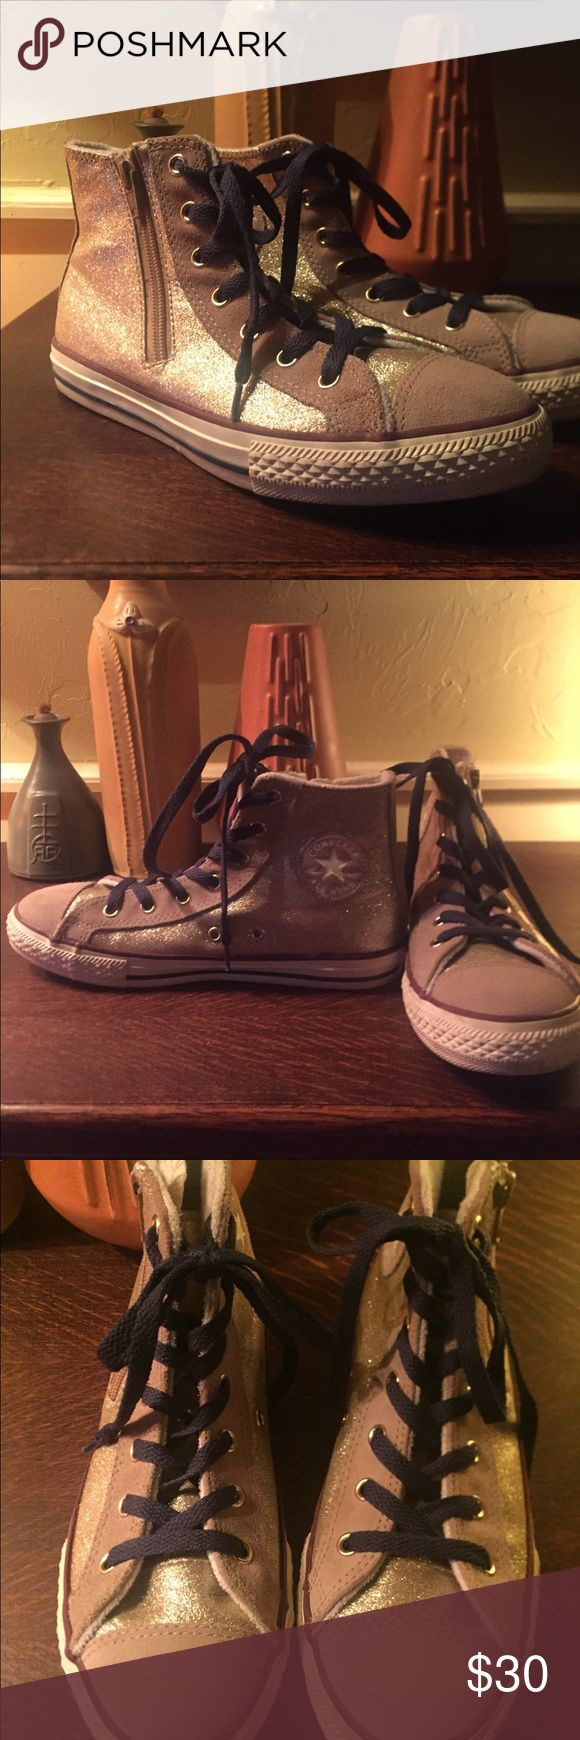 Kids gold glitter Converse hightop with side zip Kids gold glitter Converse hightop with side zip. Gold glitter and buff suede. Navy blue laces. Worn 6 times as a part of a dance team uniform. Excellent condition. Size 4 Converse Shoes Sneakers